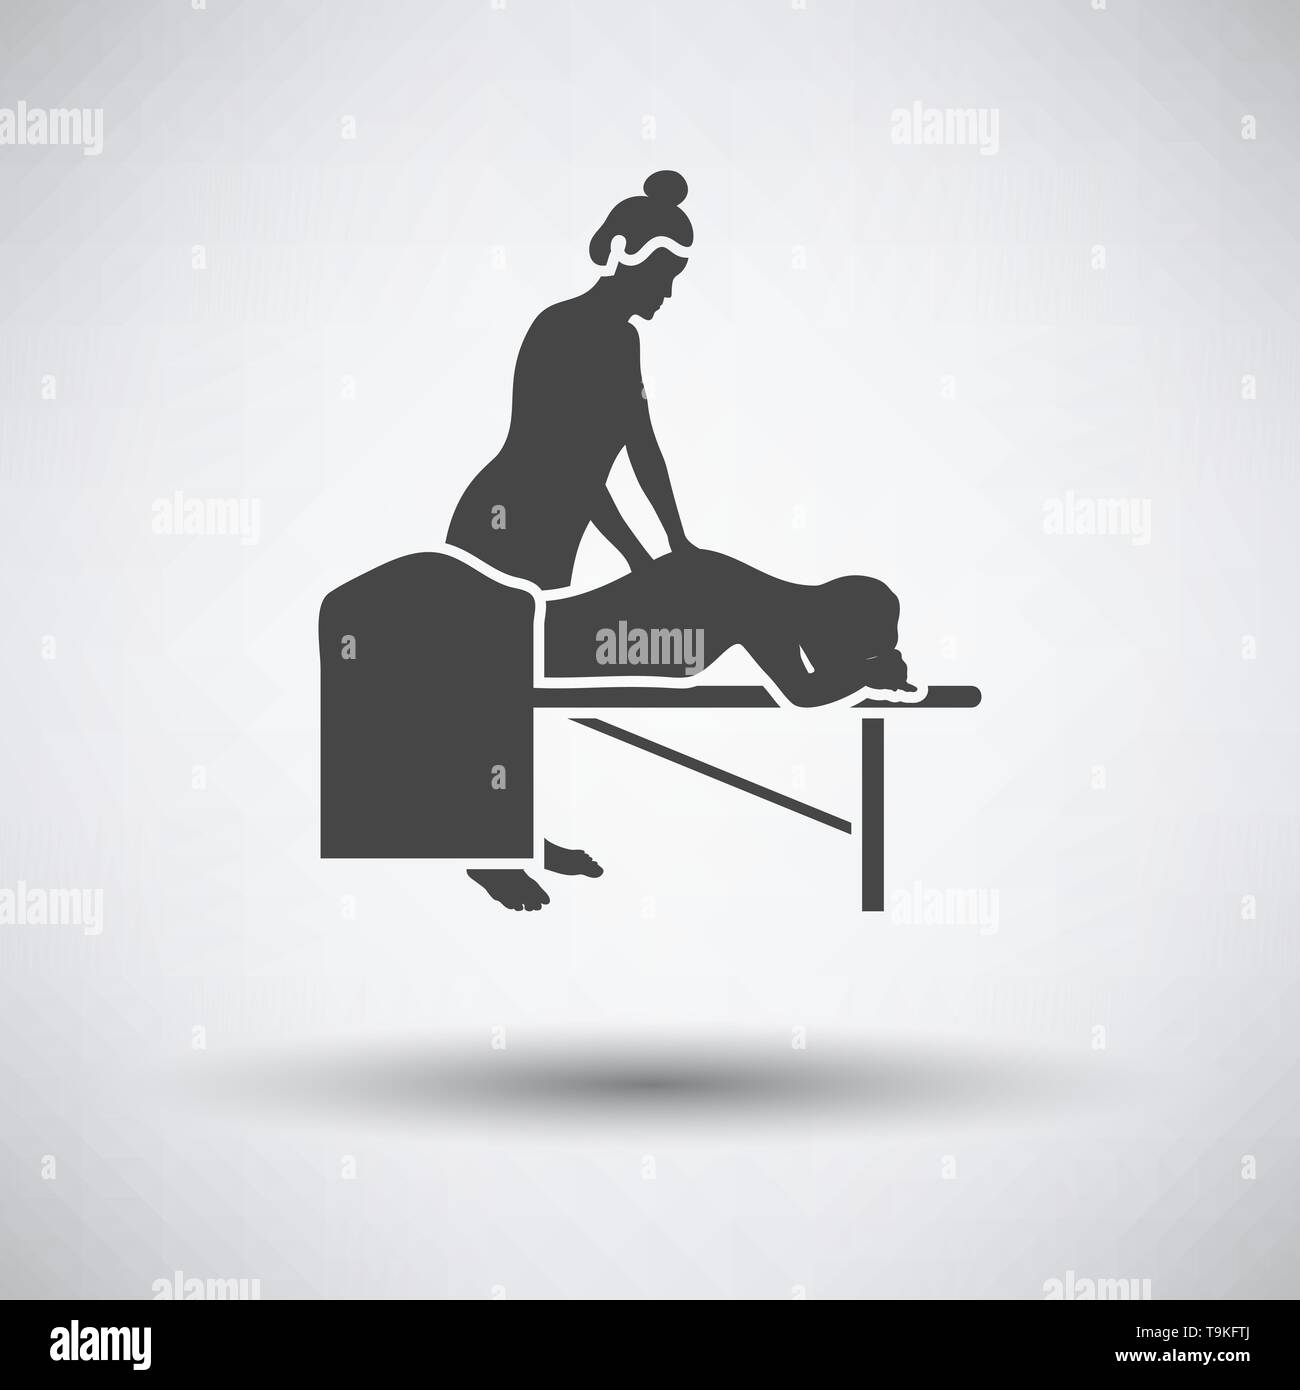 Woman massage icon on gray background with round shadow. Vector illustration. - Stock Image